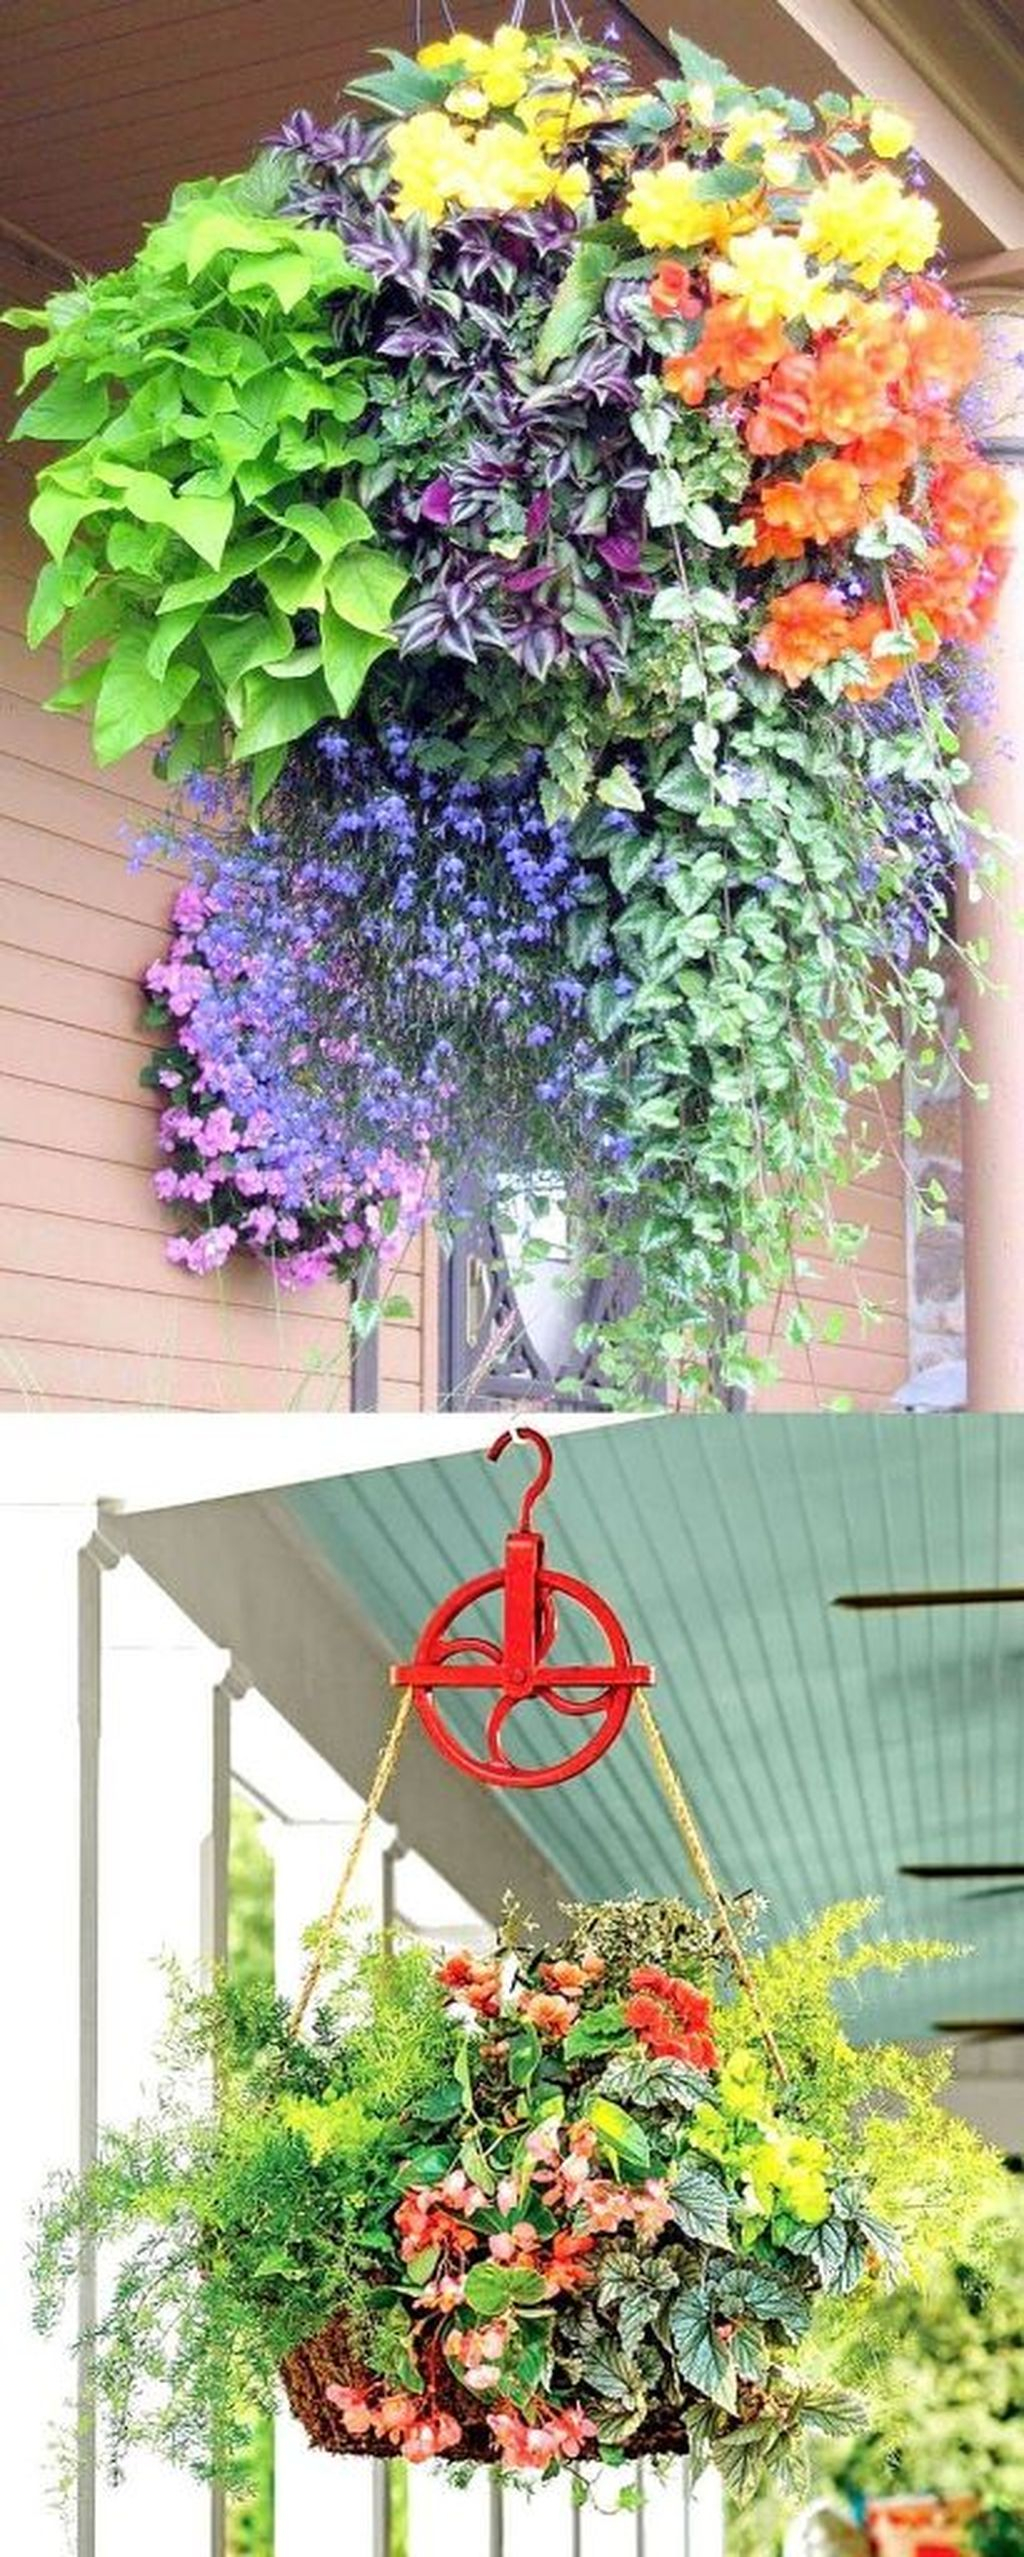 Favorite Home Patio Design Ideas With Best Hanging Plants 26